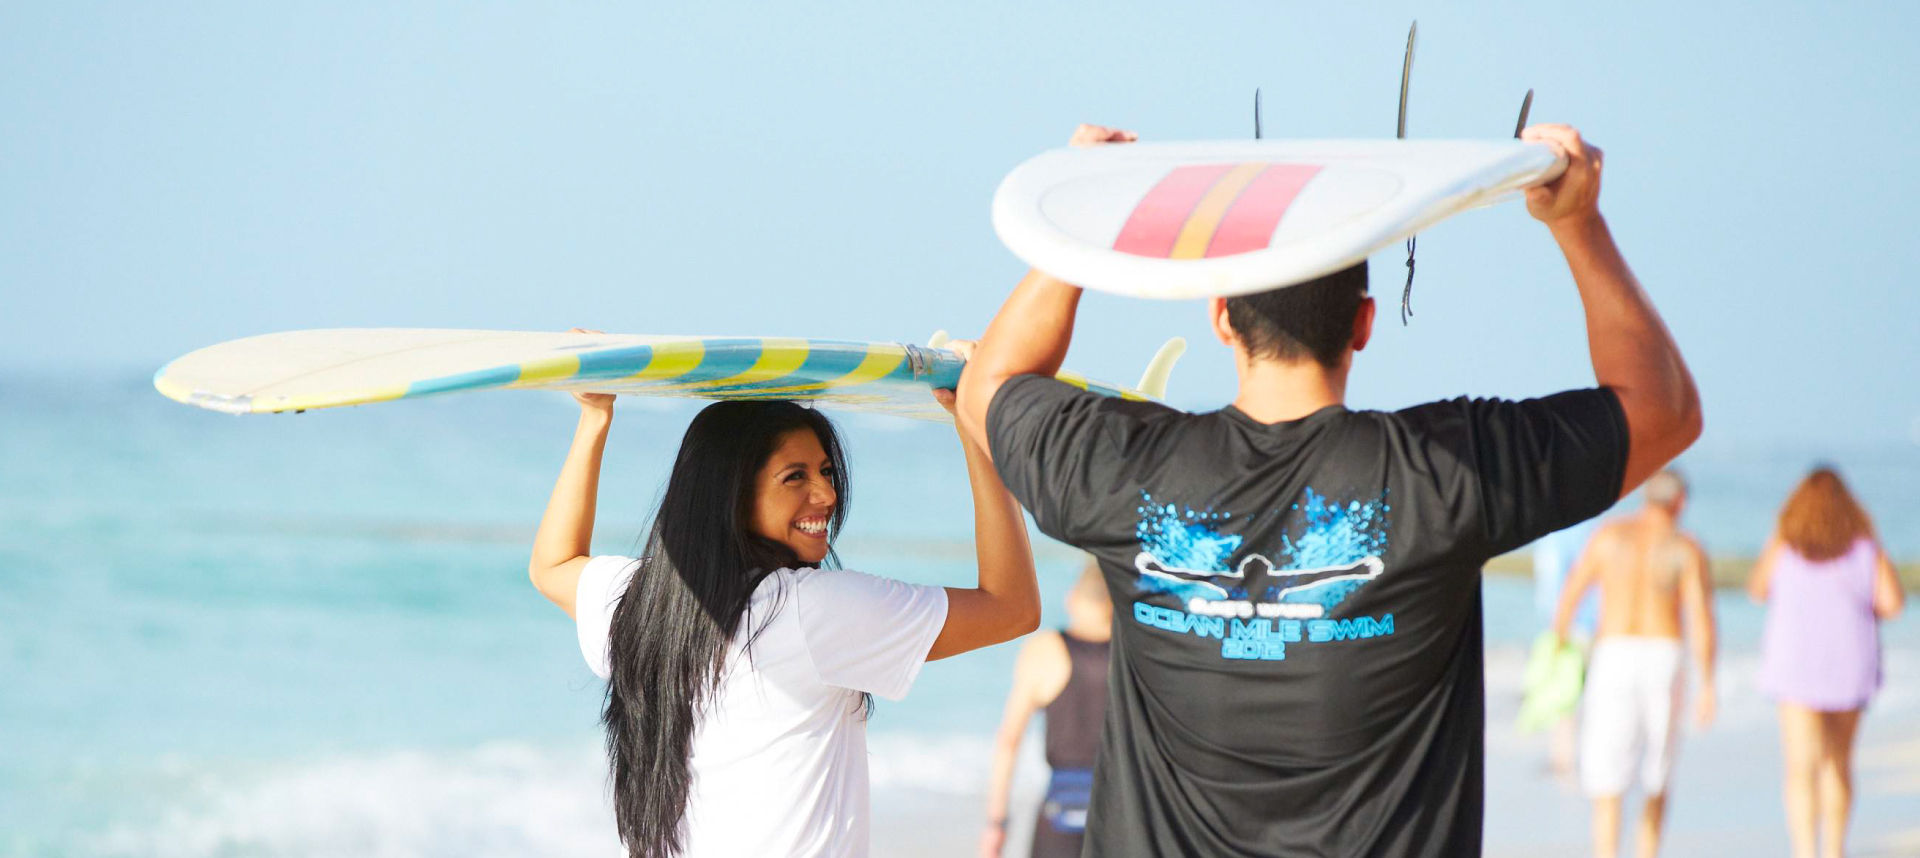 Male and female holding surfboards above their heads at the beach